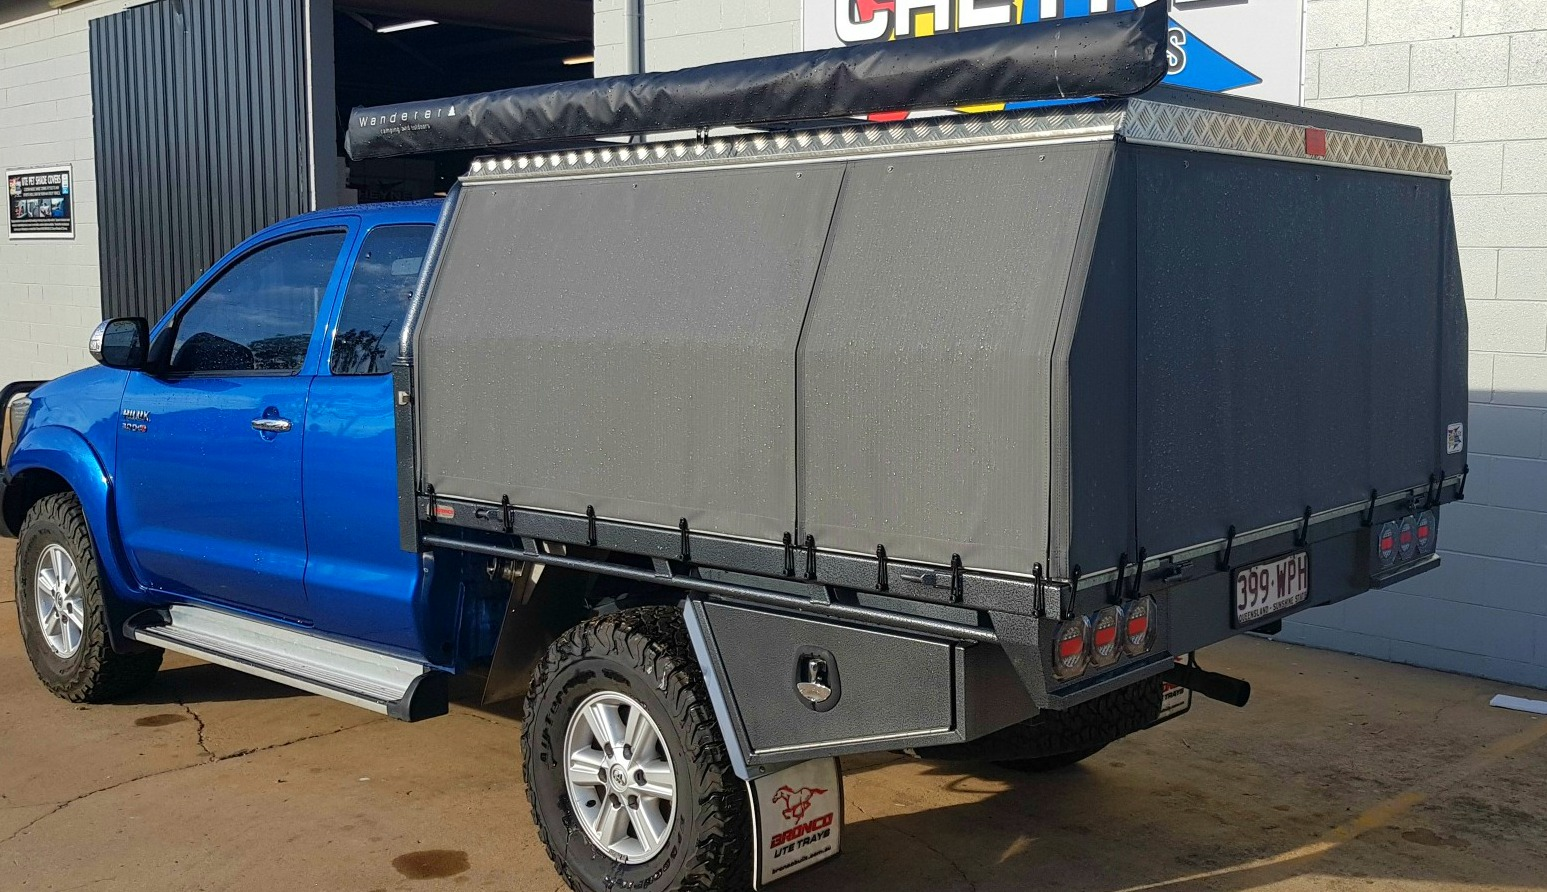 4WD Canopies, Campers, Caravans, Off Road Equipment.